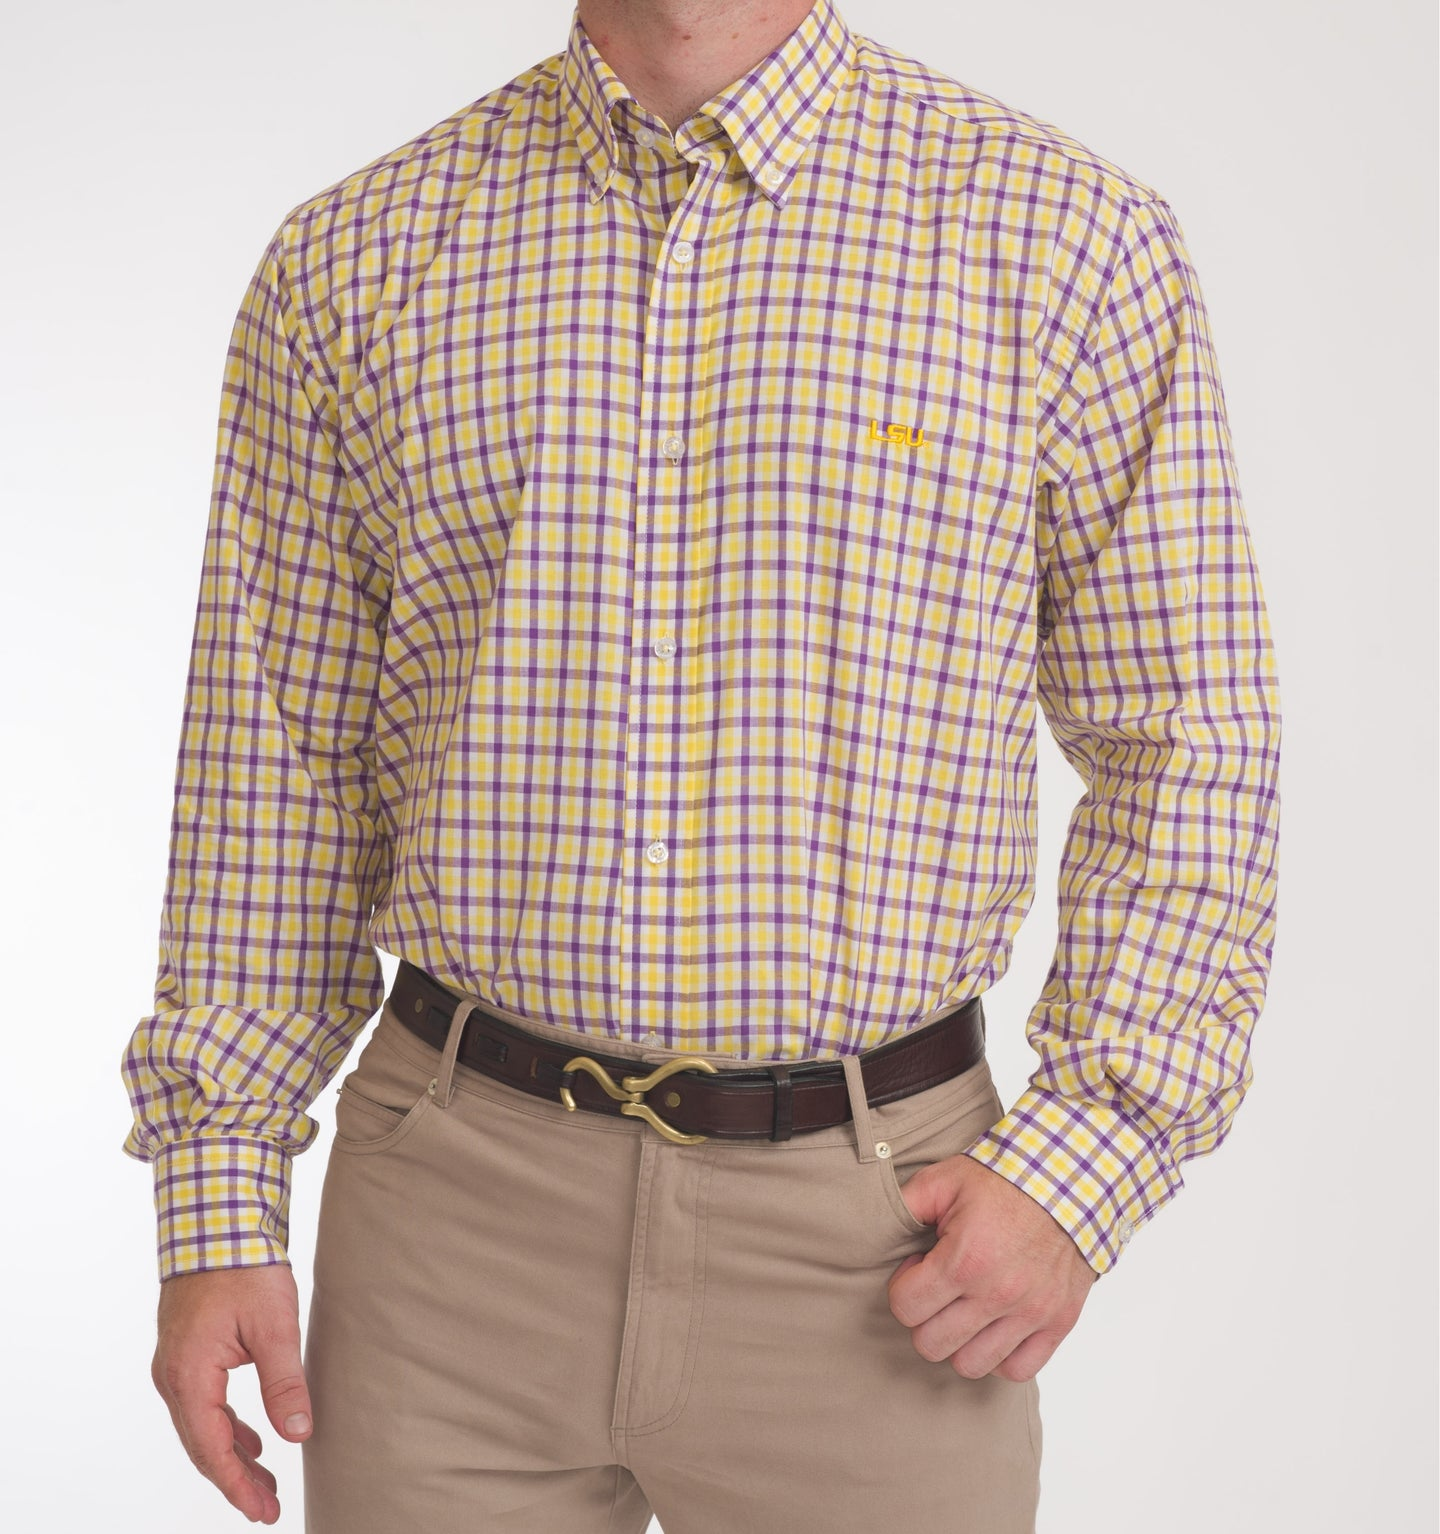 LSU Purple and Gold Gingham